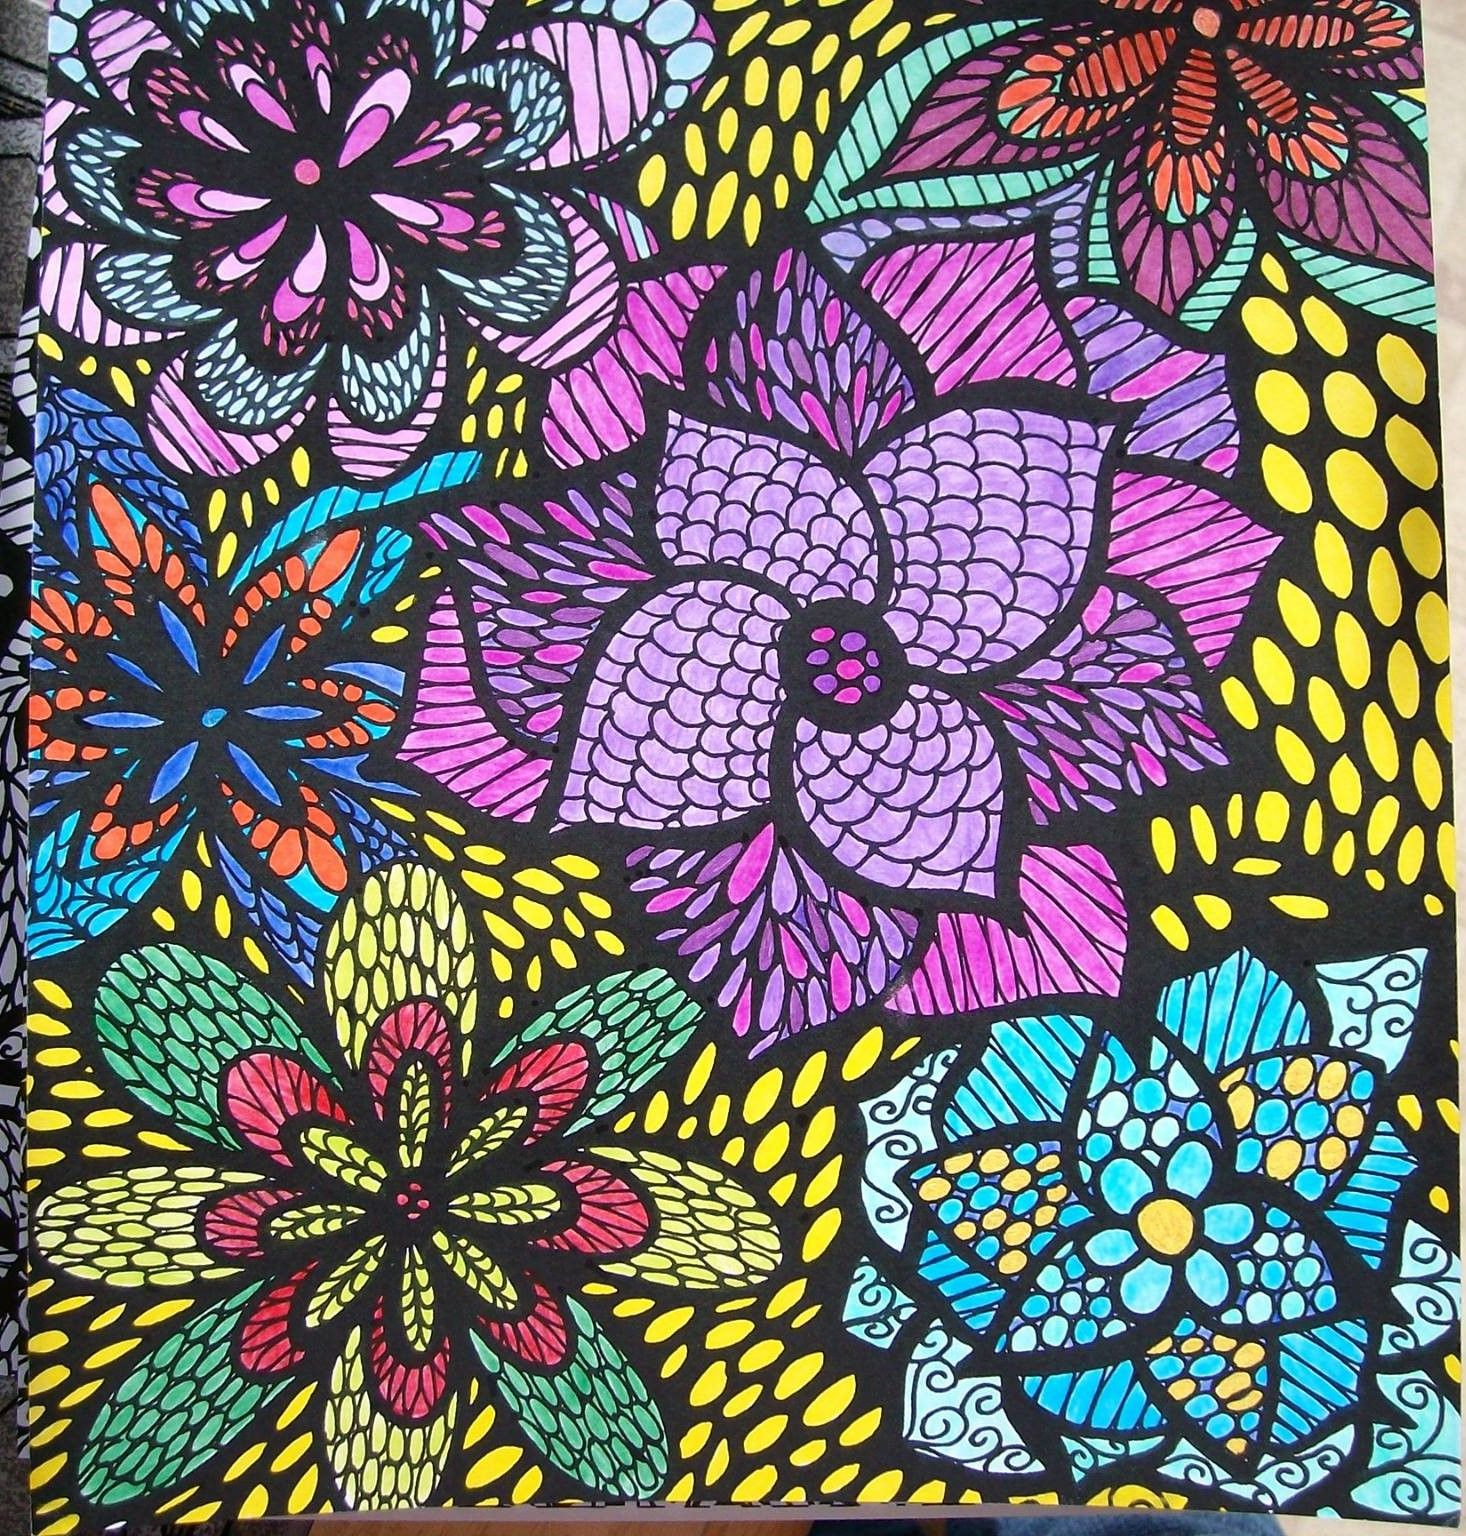 ColorIt Colorful Flowers Volume 1 Colorist Becky Wilson Adultcoloring Coloringforadults